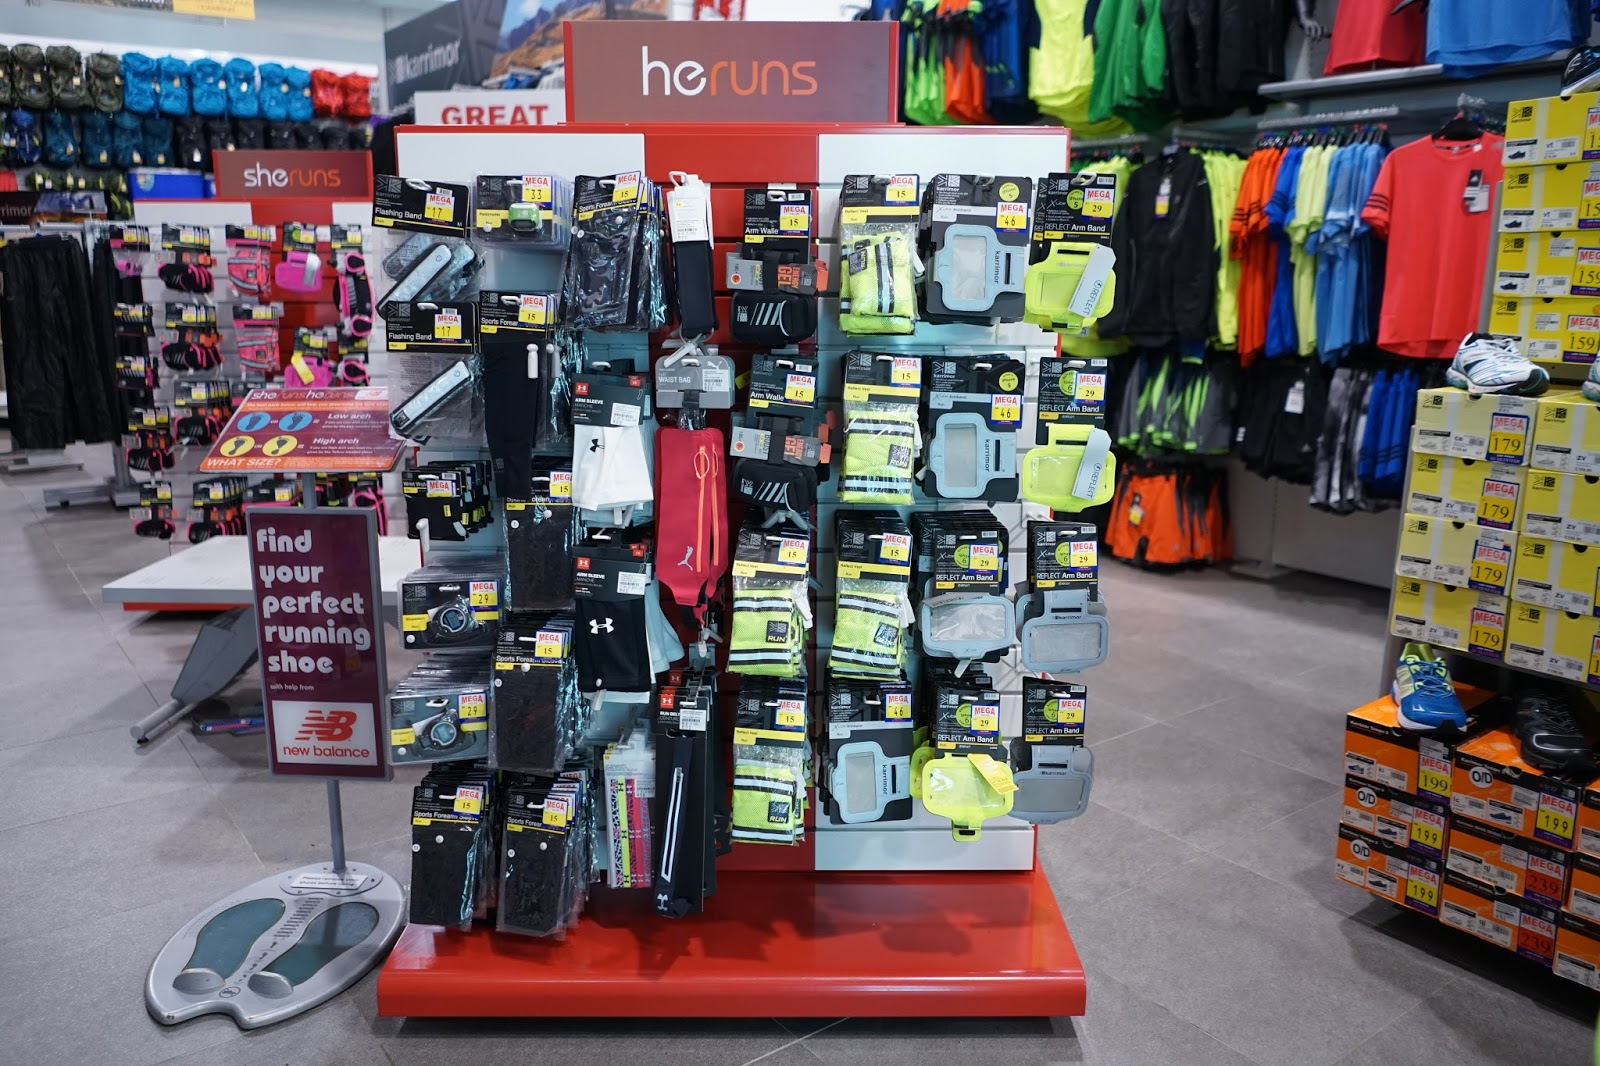 Karen kho shopping in sports direct so if youre looking for sports equipment from head to toes for you or your family members visit any of sports direct outlet in malaysia and enjoy the sciox Choice Image